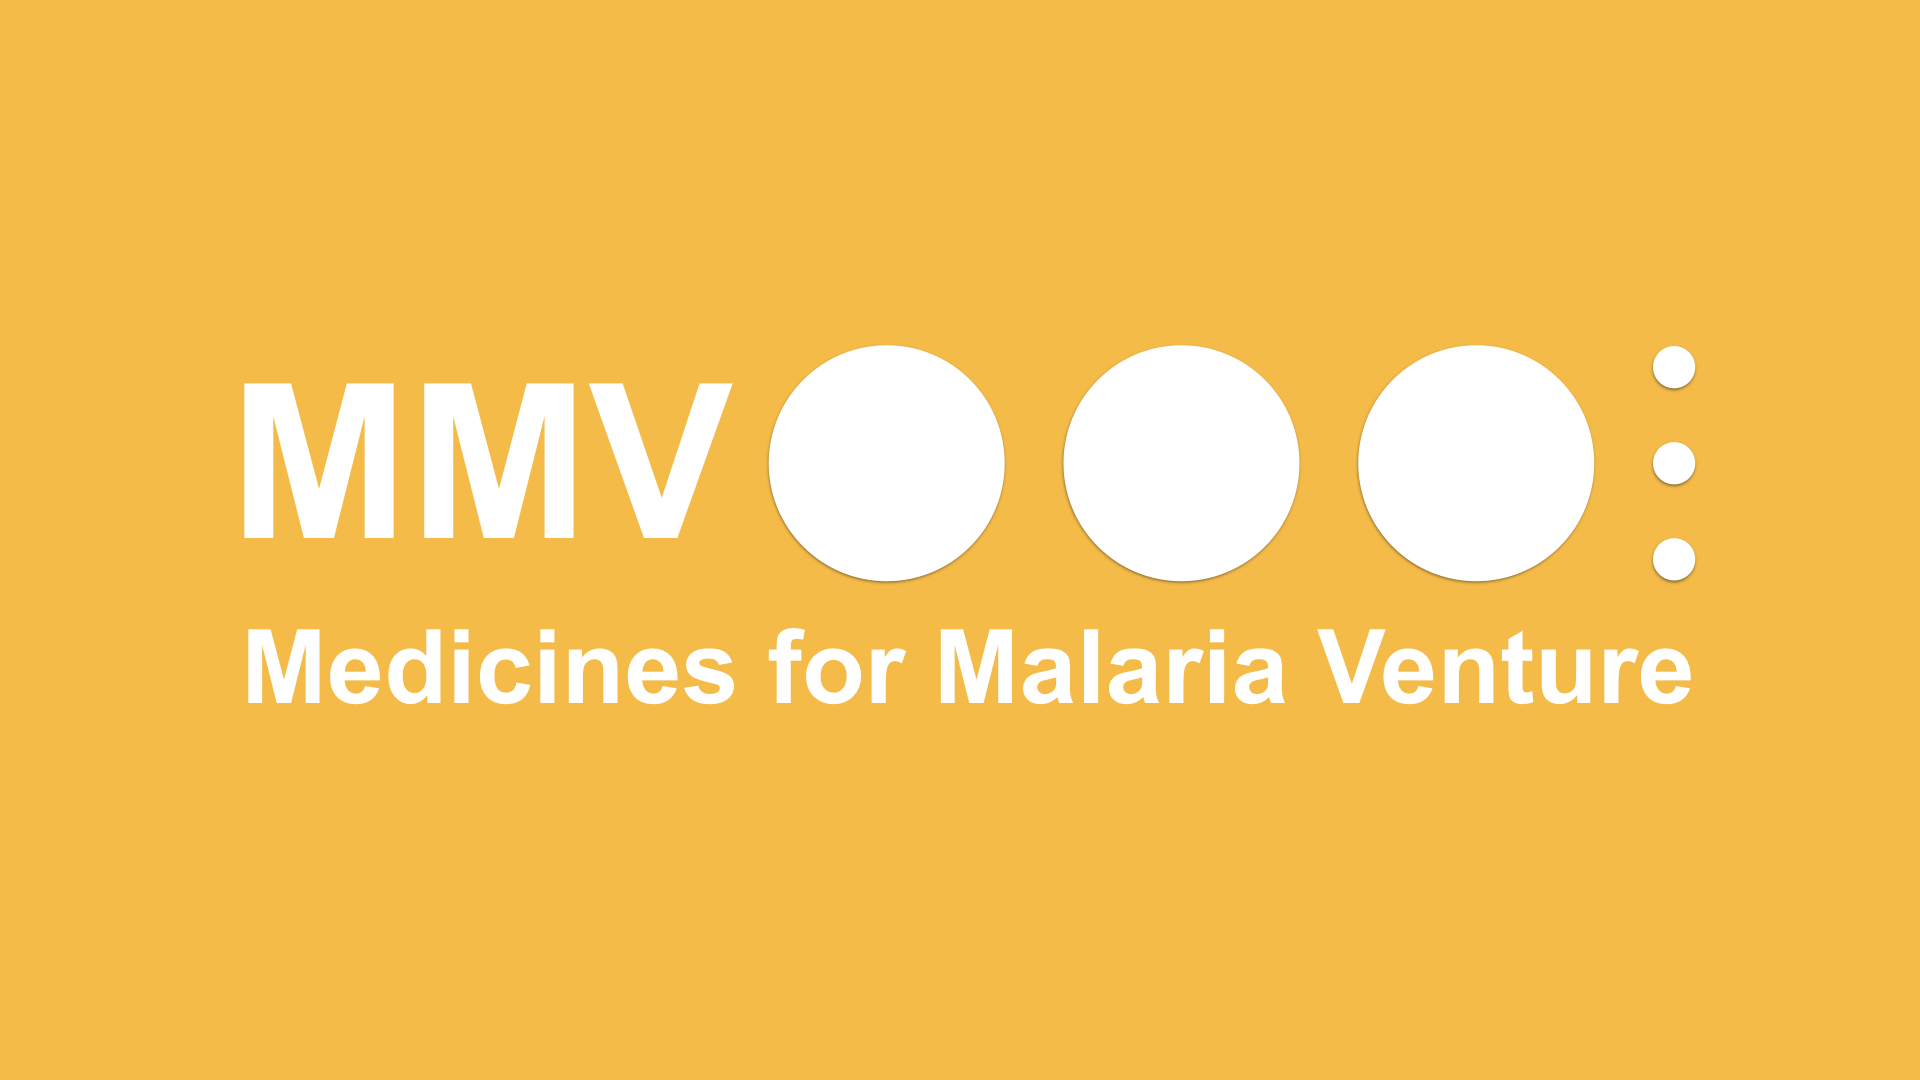 The Medicines For Malaria Venture